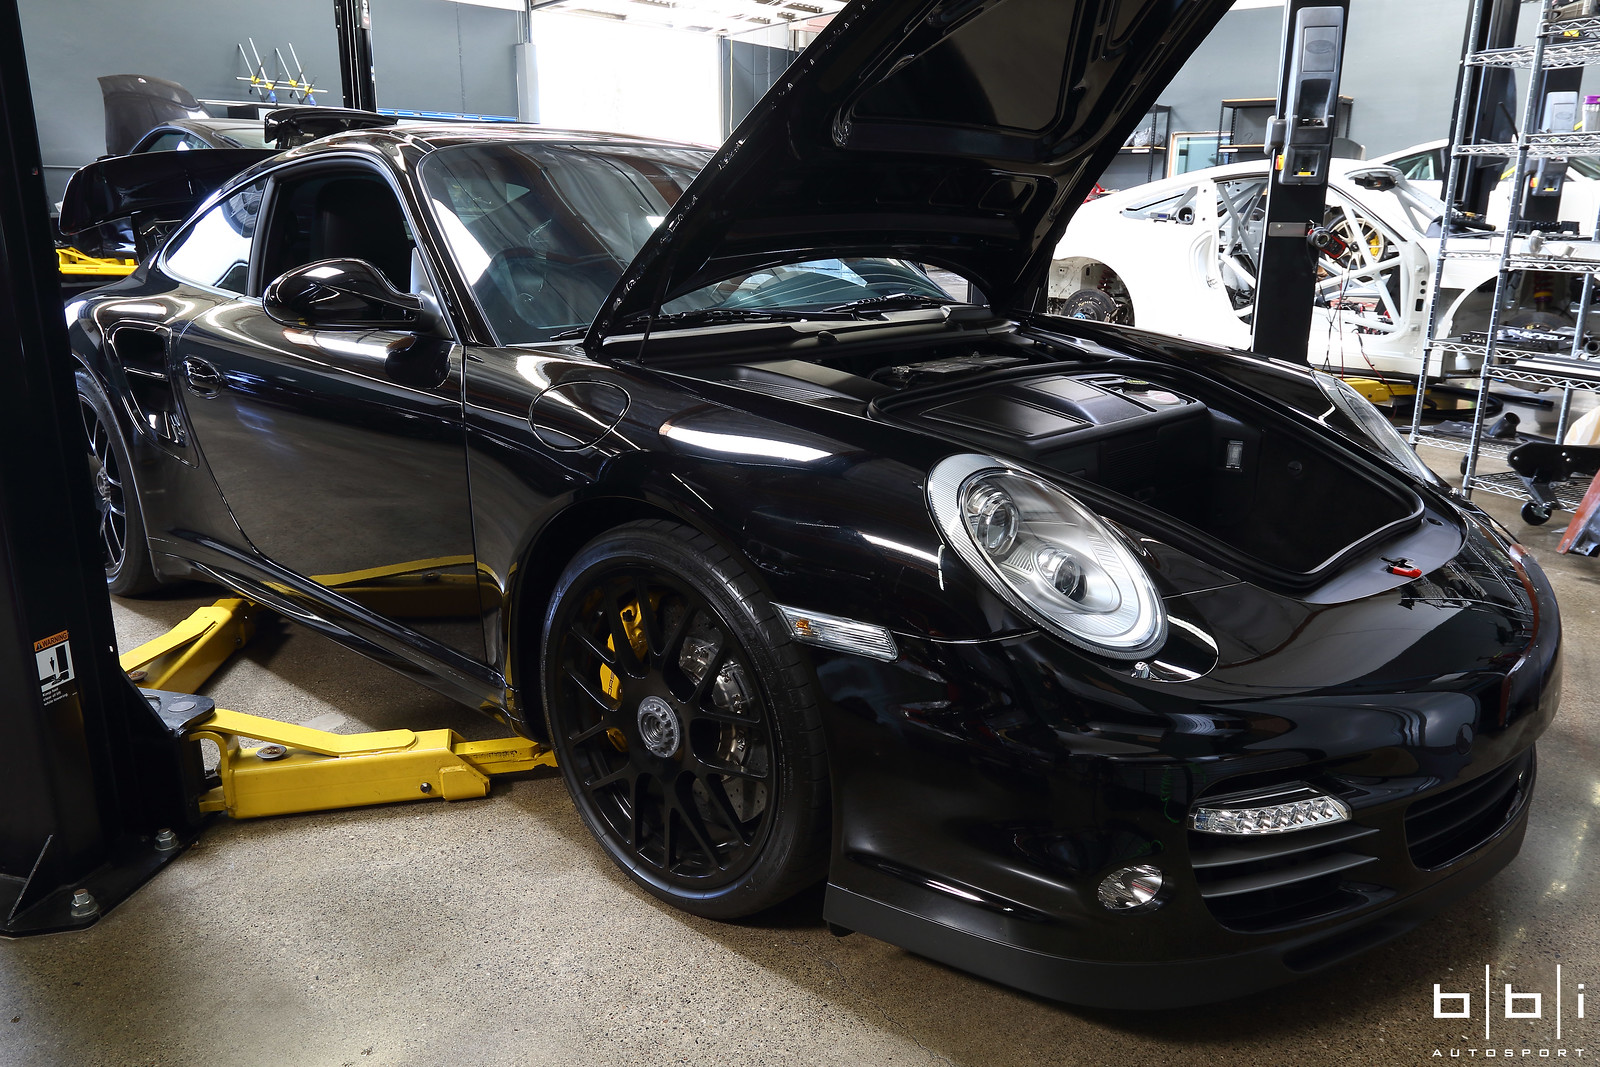 Maintenance Mondays Porsche 997 2 Turbo S 24 000 Mile Interval